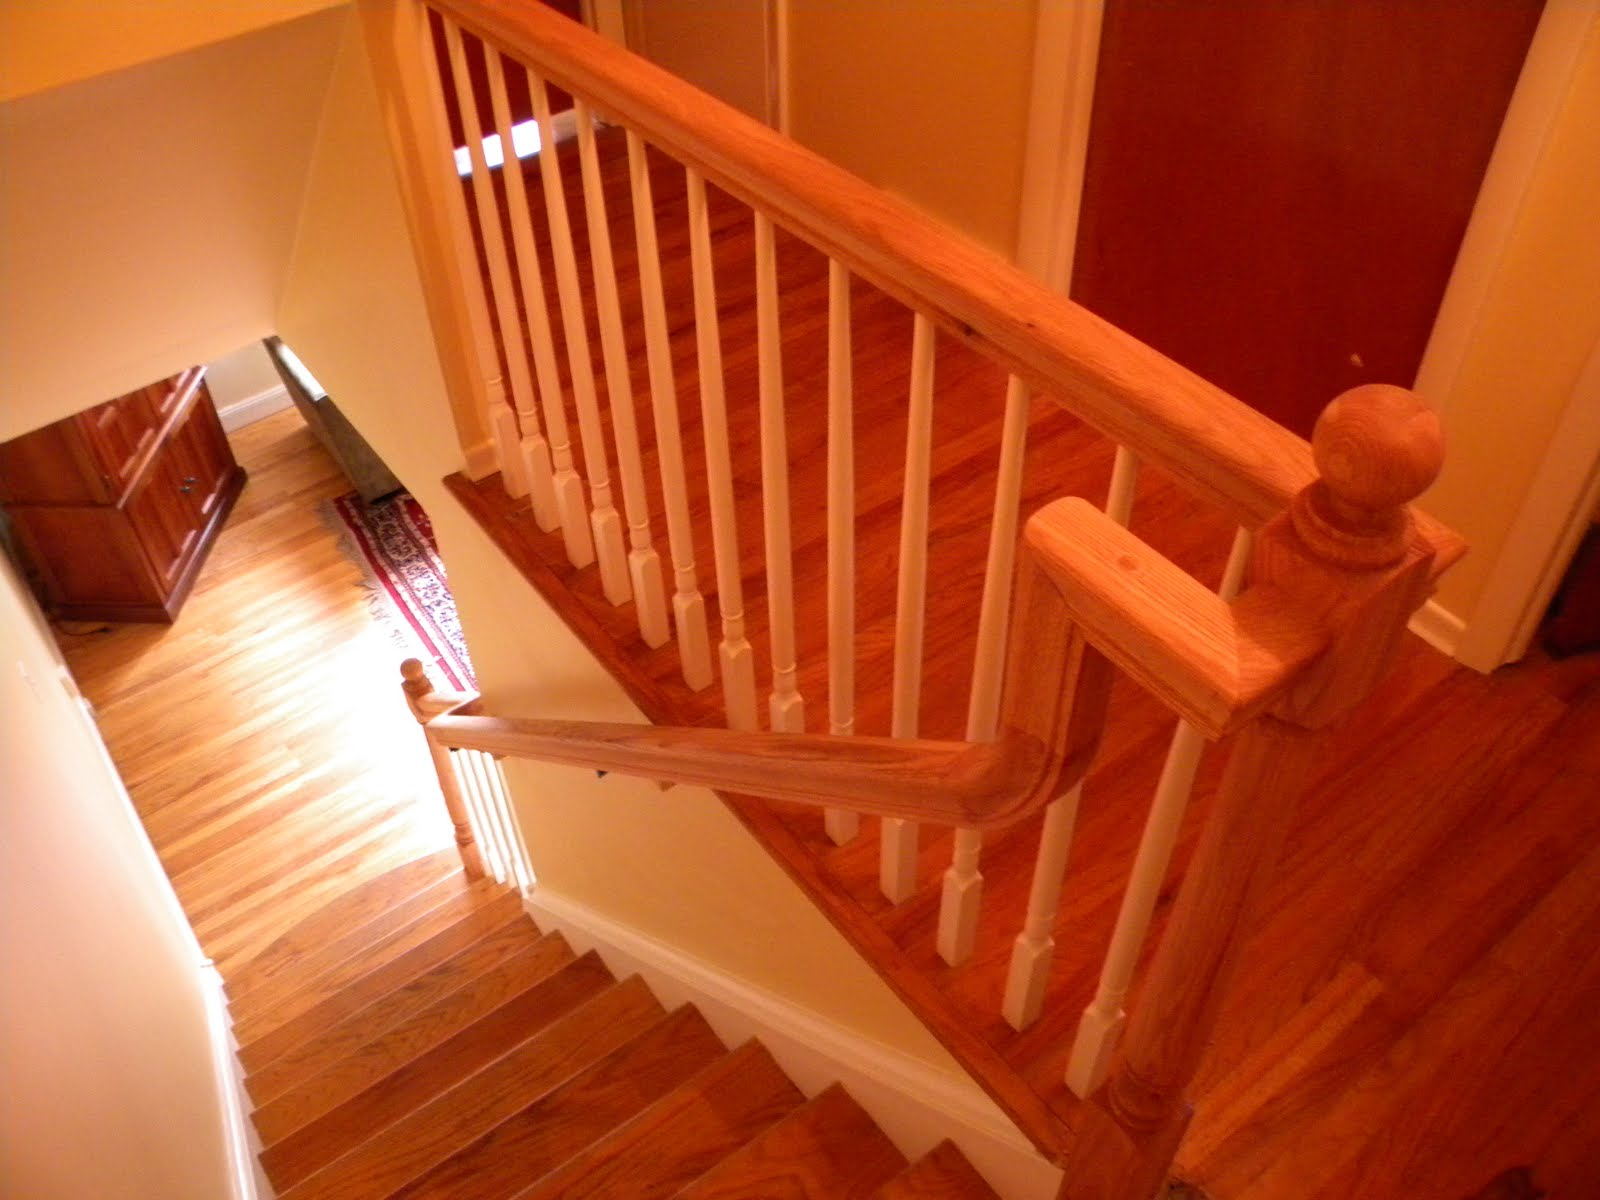 wood handrails for stairs | Wood Stairs and Rails and Iron Balusters: Wood Handrail ...